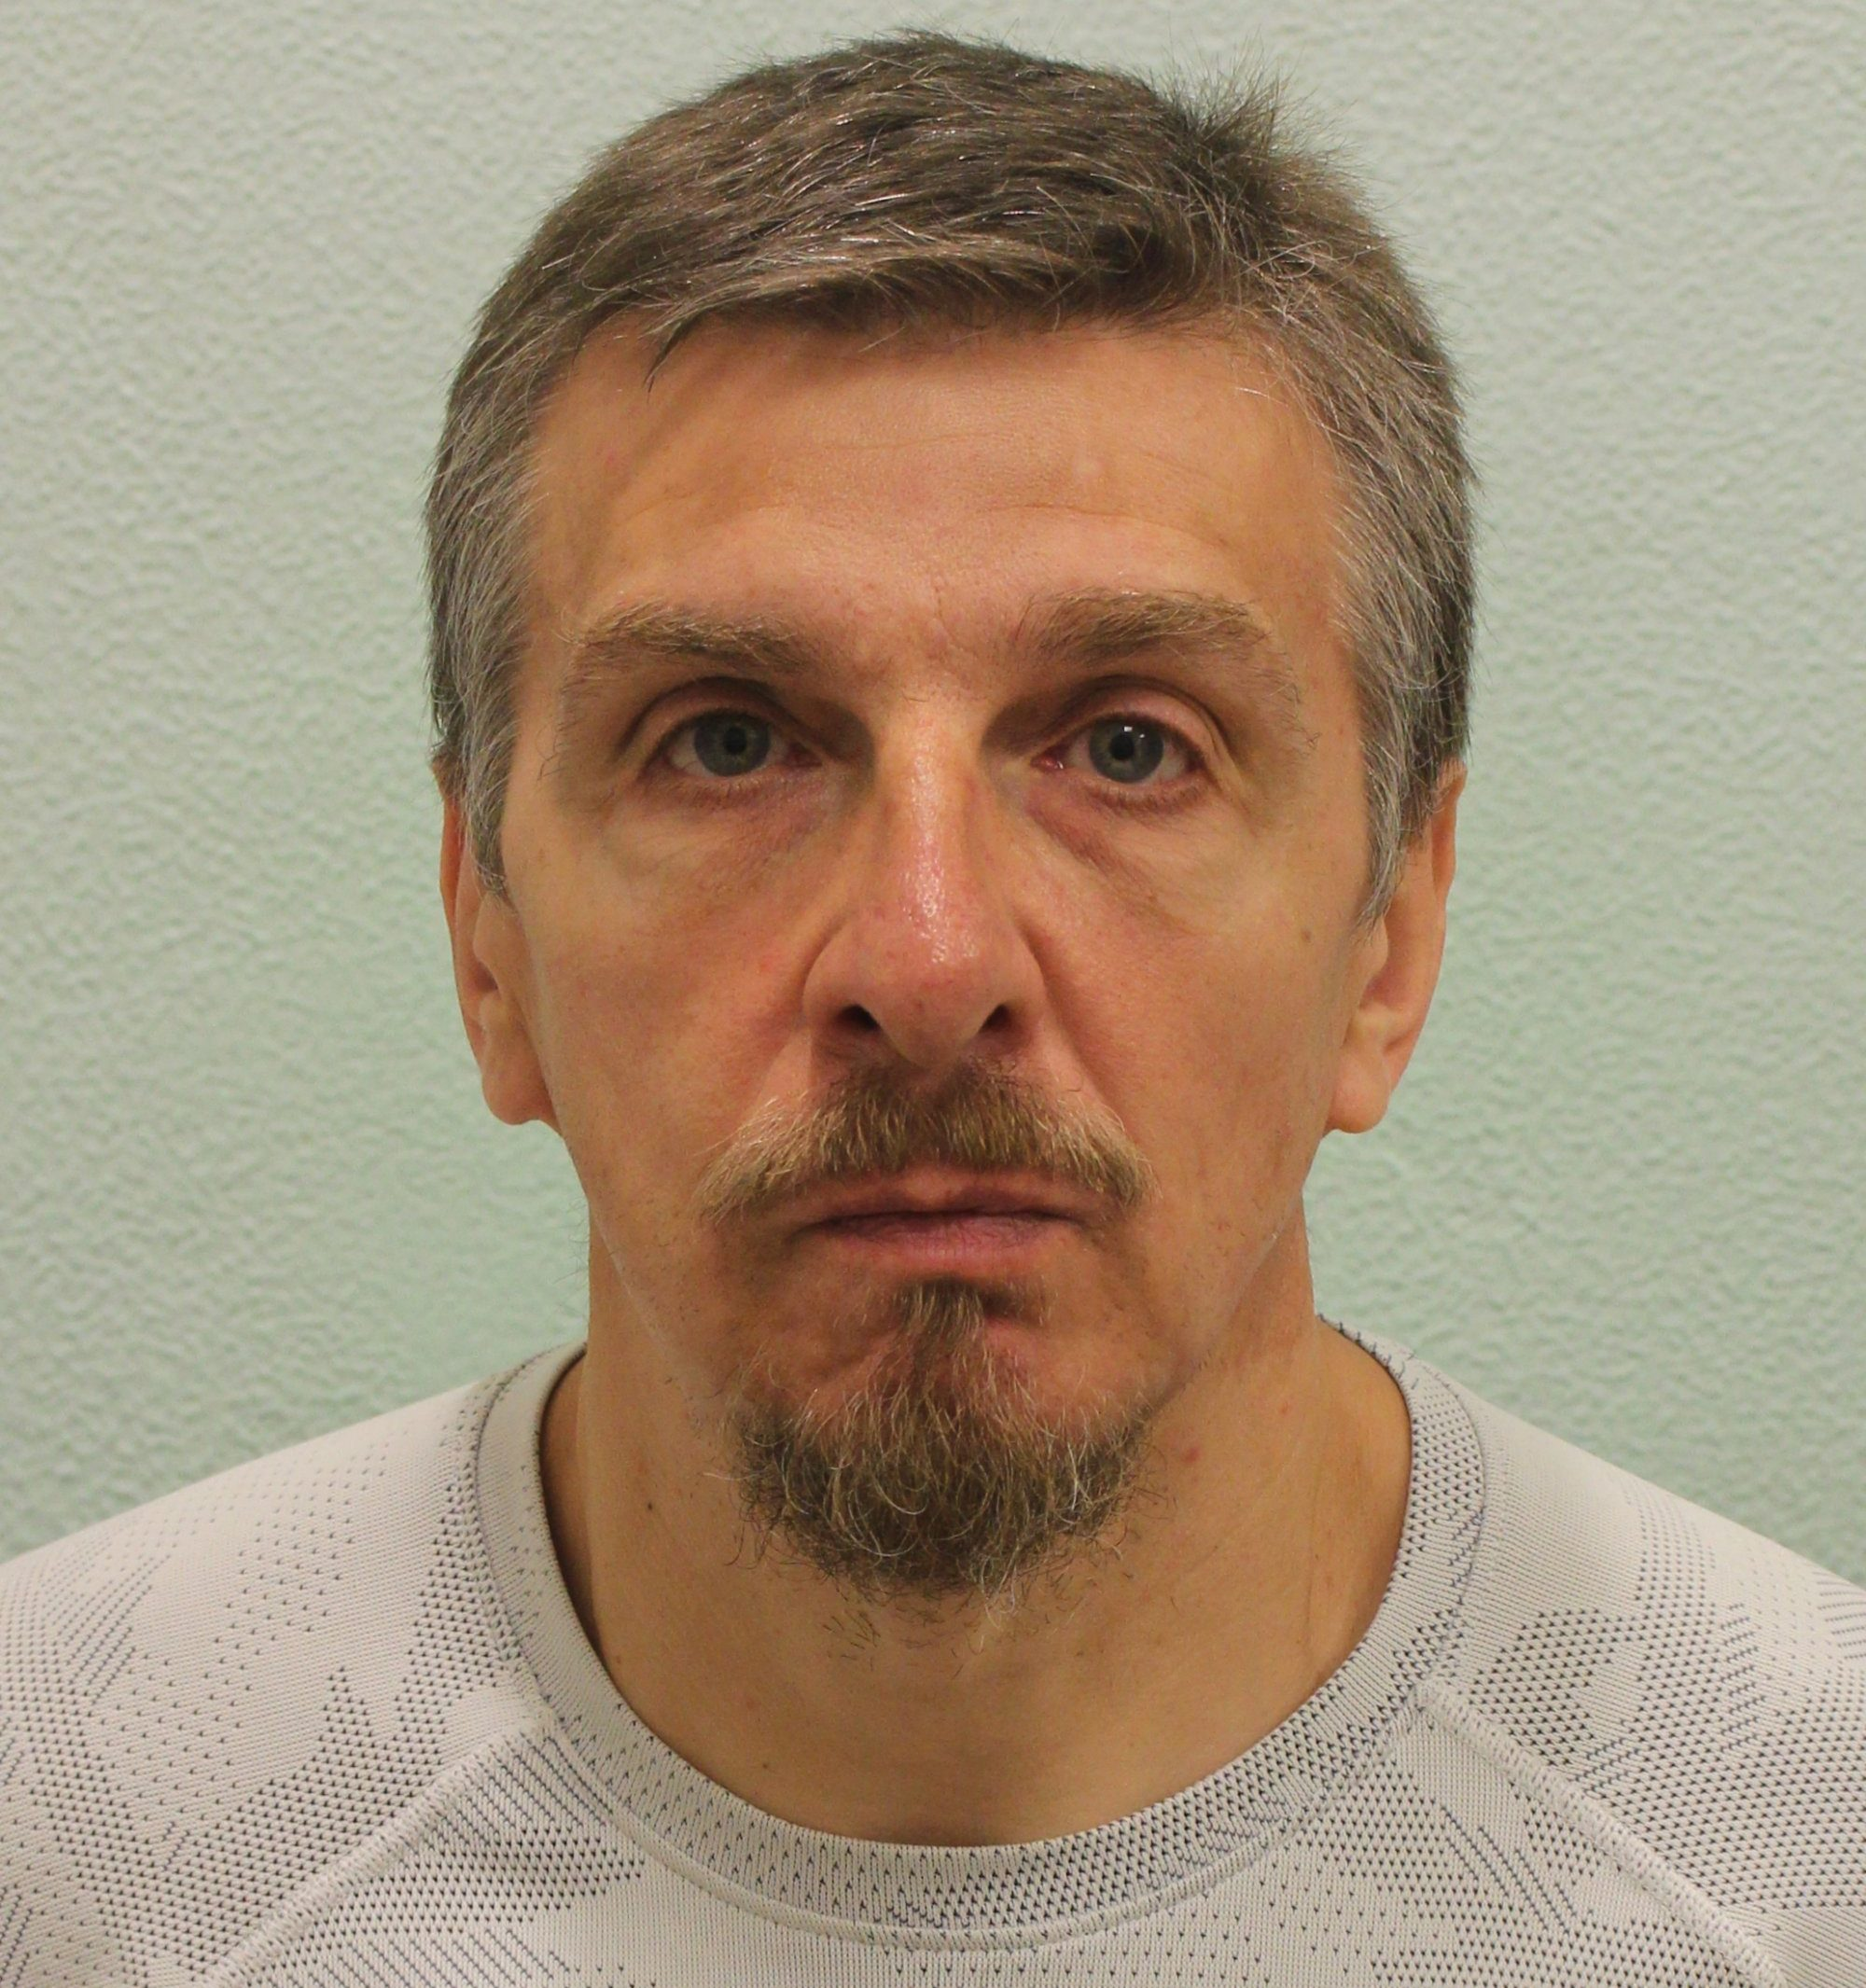 A 50-year-old man responsible for two vicious stabbings in a two-week period that left two men with life-threatening injuries has been given two life sentences. Vladimer Rutkovskis, (24.01.69) of Crowther Avenue, Brentford, was sentenced to a total of 25 years? imprisonment at the Old Bailey on Thursday, 14 March after he was convicted of two counts of attempted murder. Rutkovskis was found guilty of the charges after a trial at the same court in January. He will not be eligible for parole until he has served at least 11 years and 205 days. Rutkovskis carried out the first attack on a member of staff at a recruitment agency in Ealing on 22 March last year. The court heard Rutkovskis had made an appointment at the agency to speak to someone about a driving job. After about 30 seconds of conversation with a male employee, Rutkovskis pulled out a knife from his jacket pocket and stabbed him in the chest. The 22-year-old victim, who had only worked for the company for four days, fell onto a sofa and Rutkovskis stabbed him a further four times in the chest, neck and head area. He then fled the scene after he was disturbed by other employees of the company. The victim was taken to hospital and was treated for four significant stab wounds including two to his chest and two to his head. Fortunately, he has been able to make a full recovery from his physical injuries. Two weeks later, on 3 April 2018, Rutkovskis carried out another stabbing at a building site in Horley, Surrey.